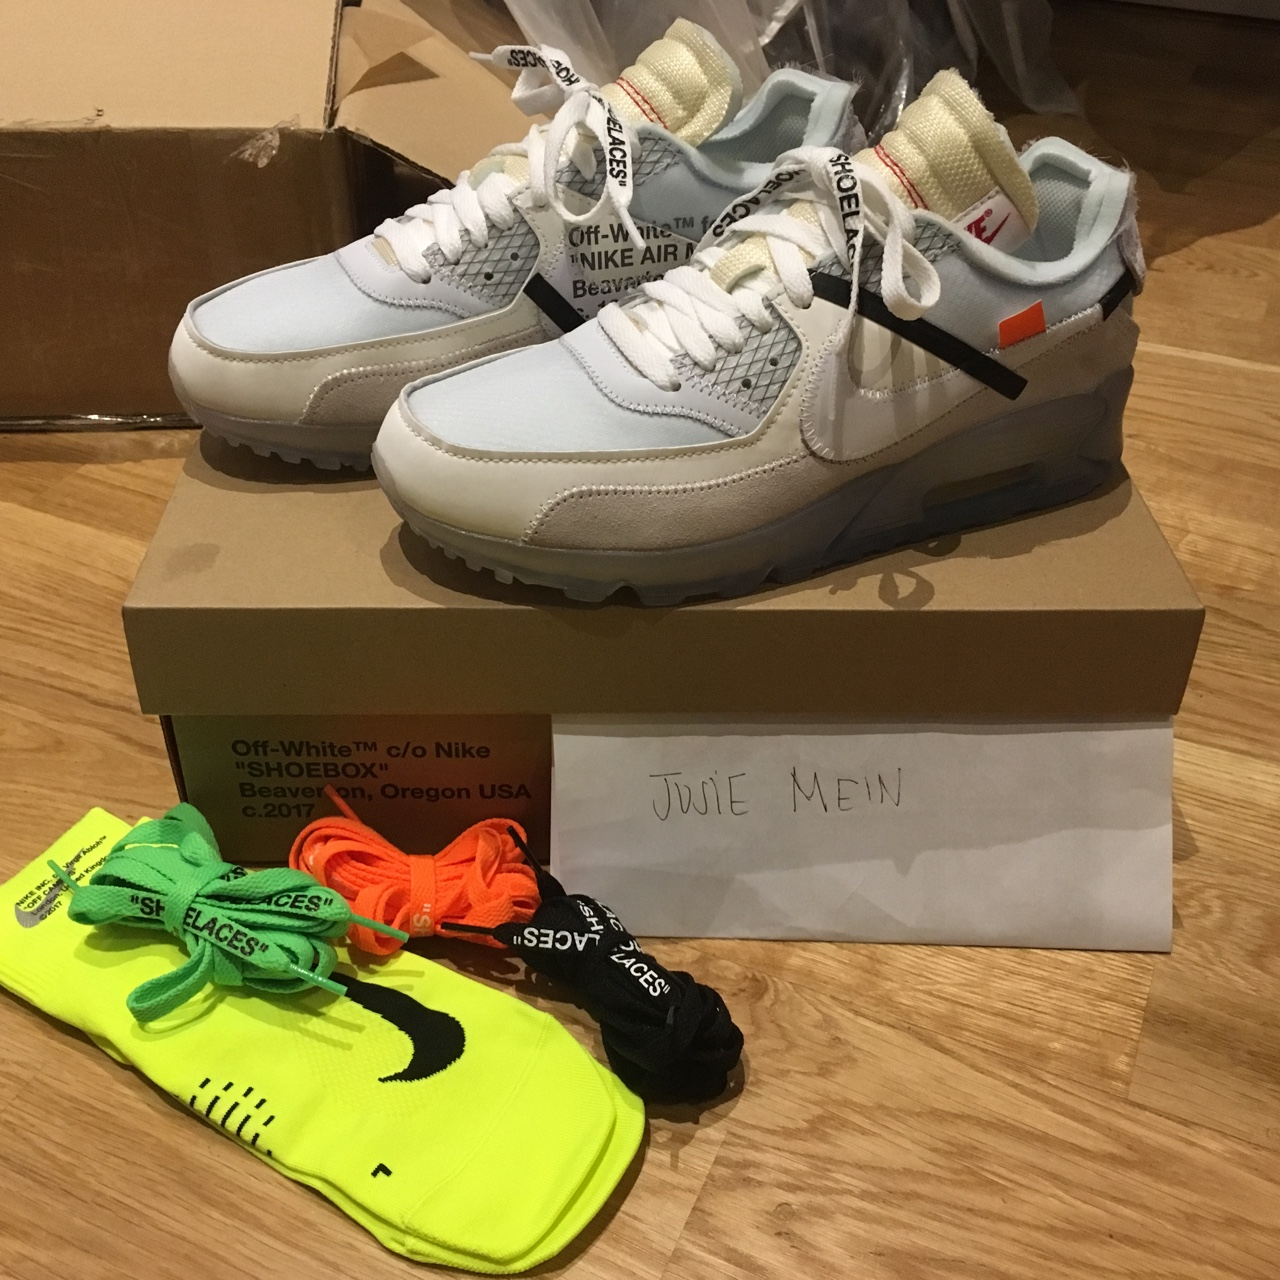 Off White Virgil Abloh X Nike air max 90 uk size 6 Depop